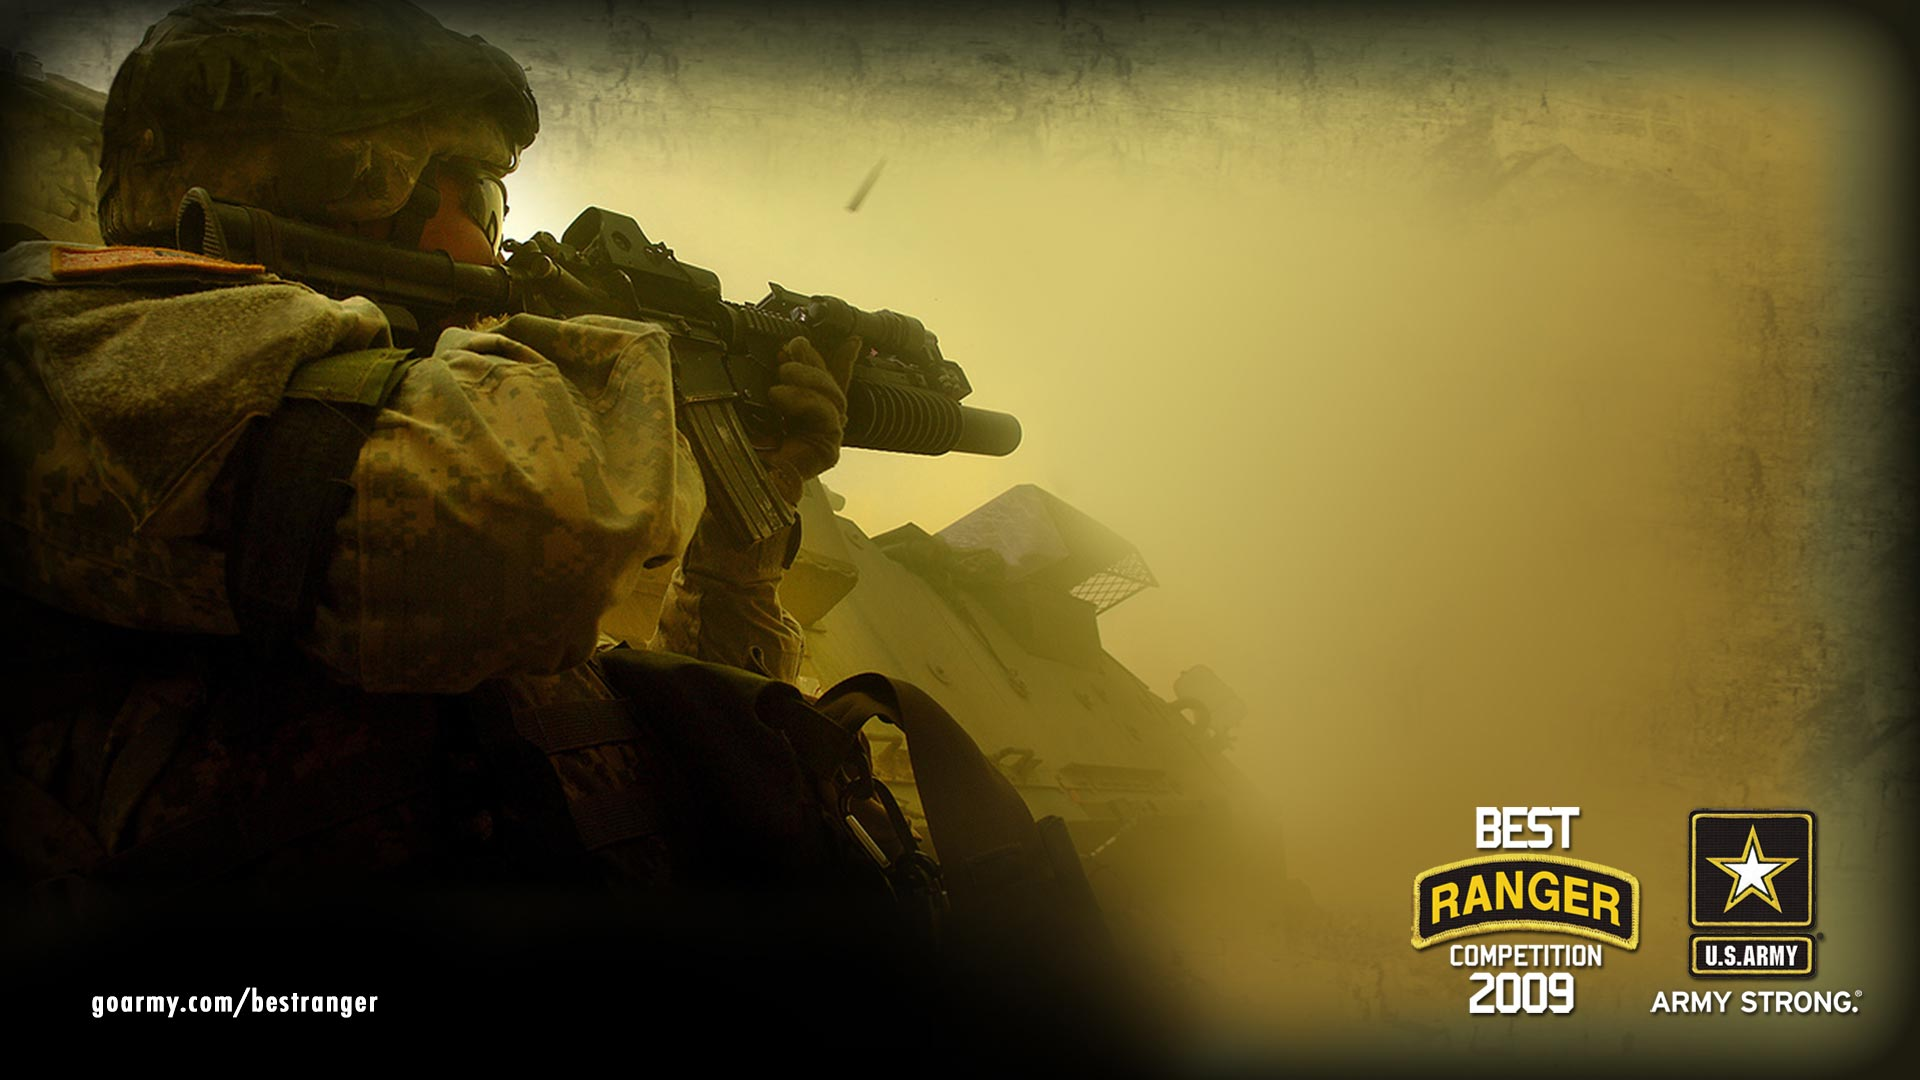 tanks wallpapers ksouth wallpaper best ranger goarmy 1920x1080